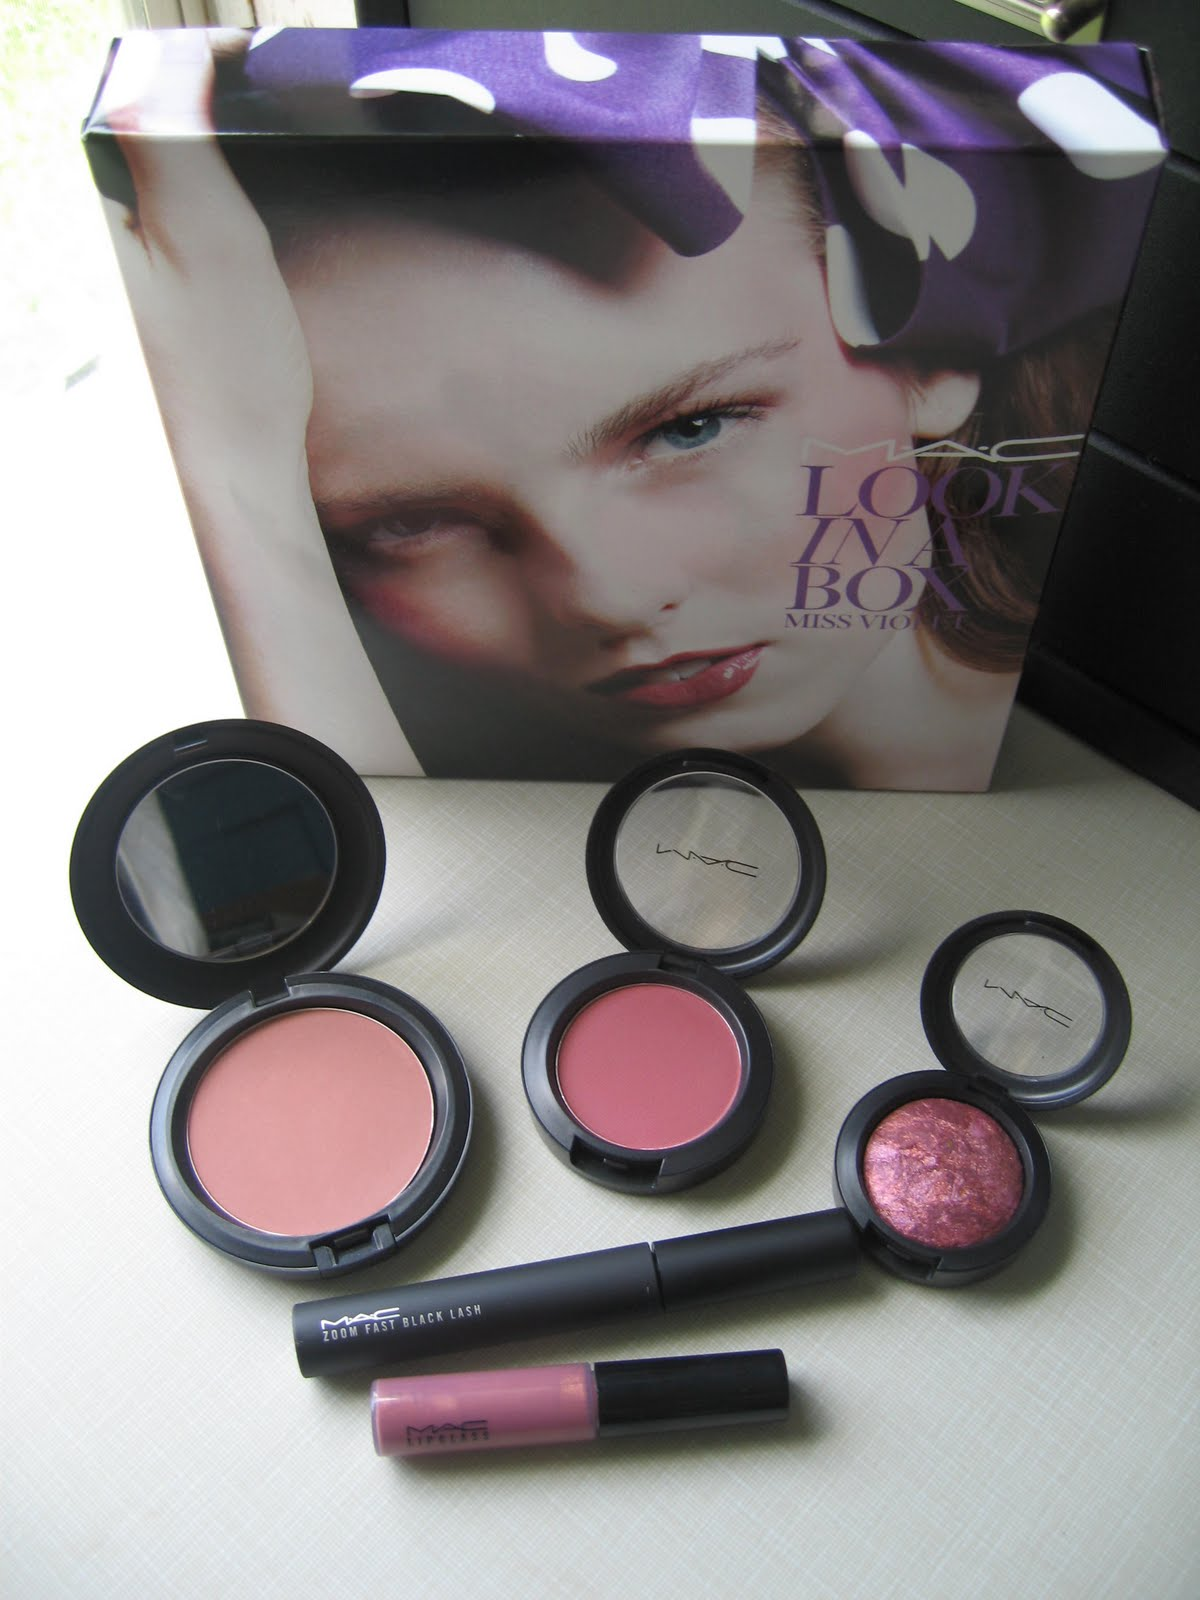 Mac Look In A Box 2016 Summer Collection: MAC Look In A Box - Miss Violet SWATCHES!